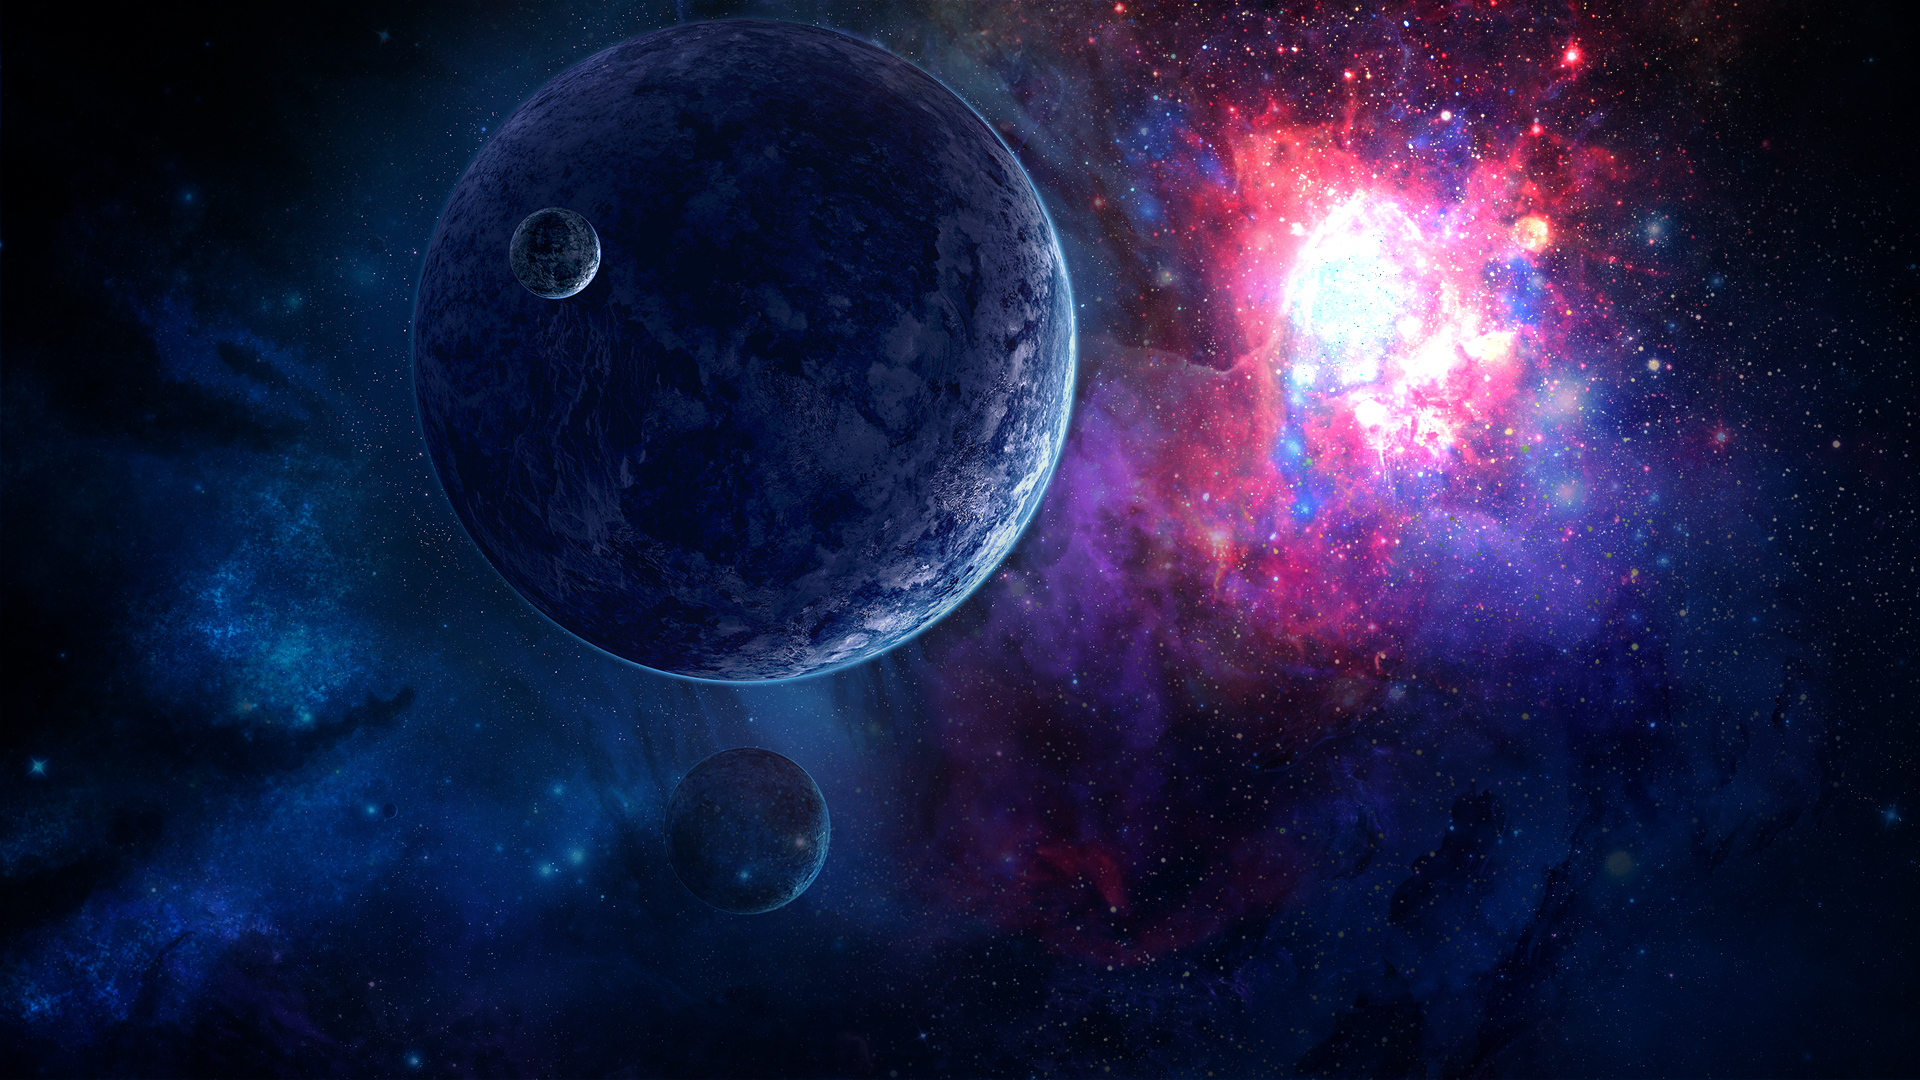 Space Wallpaper 1920x1080 Without Lower Planet By Danielbemelen